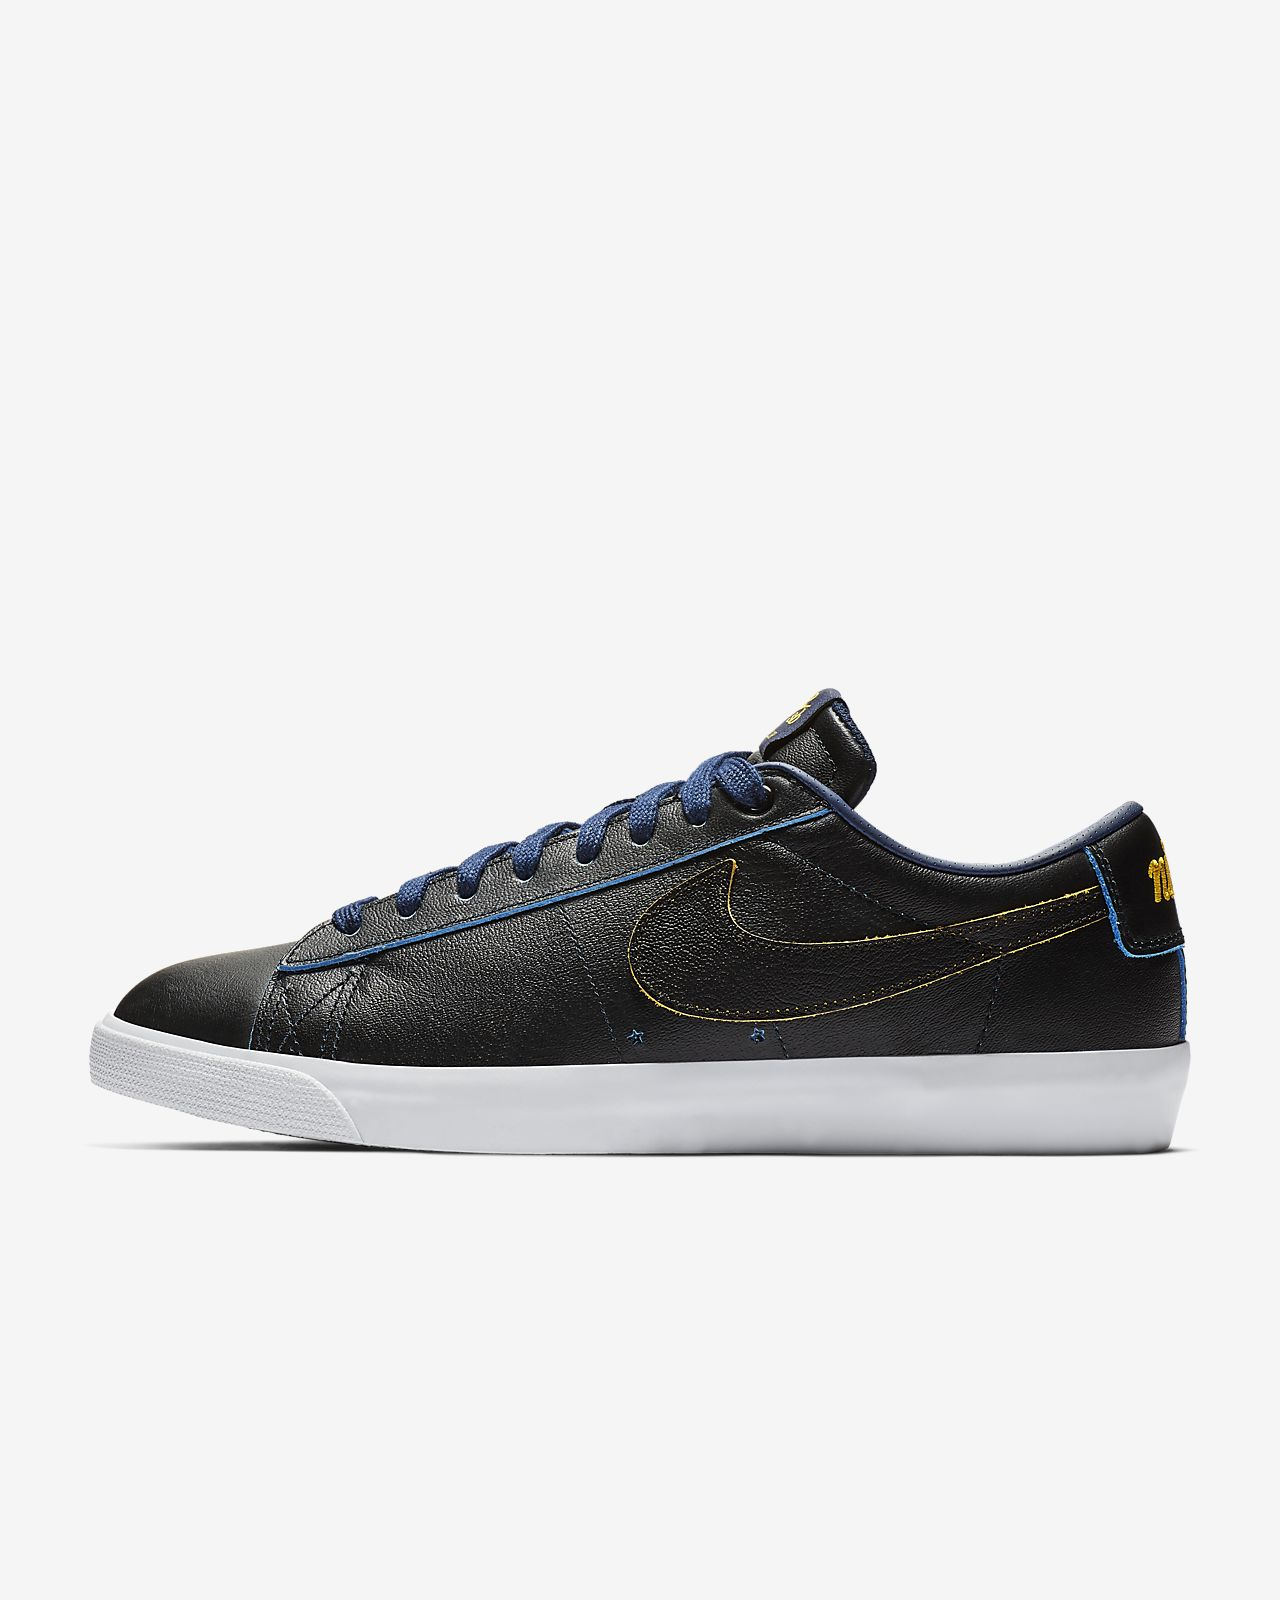 82a50b76e2c2 Nike SB Blazer Low GT NBA Men s Skate Shoe. Nike.com GB